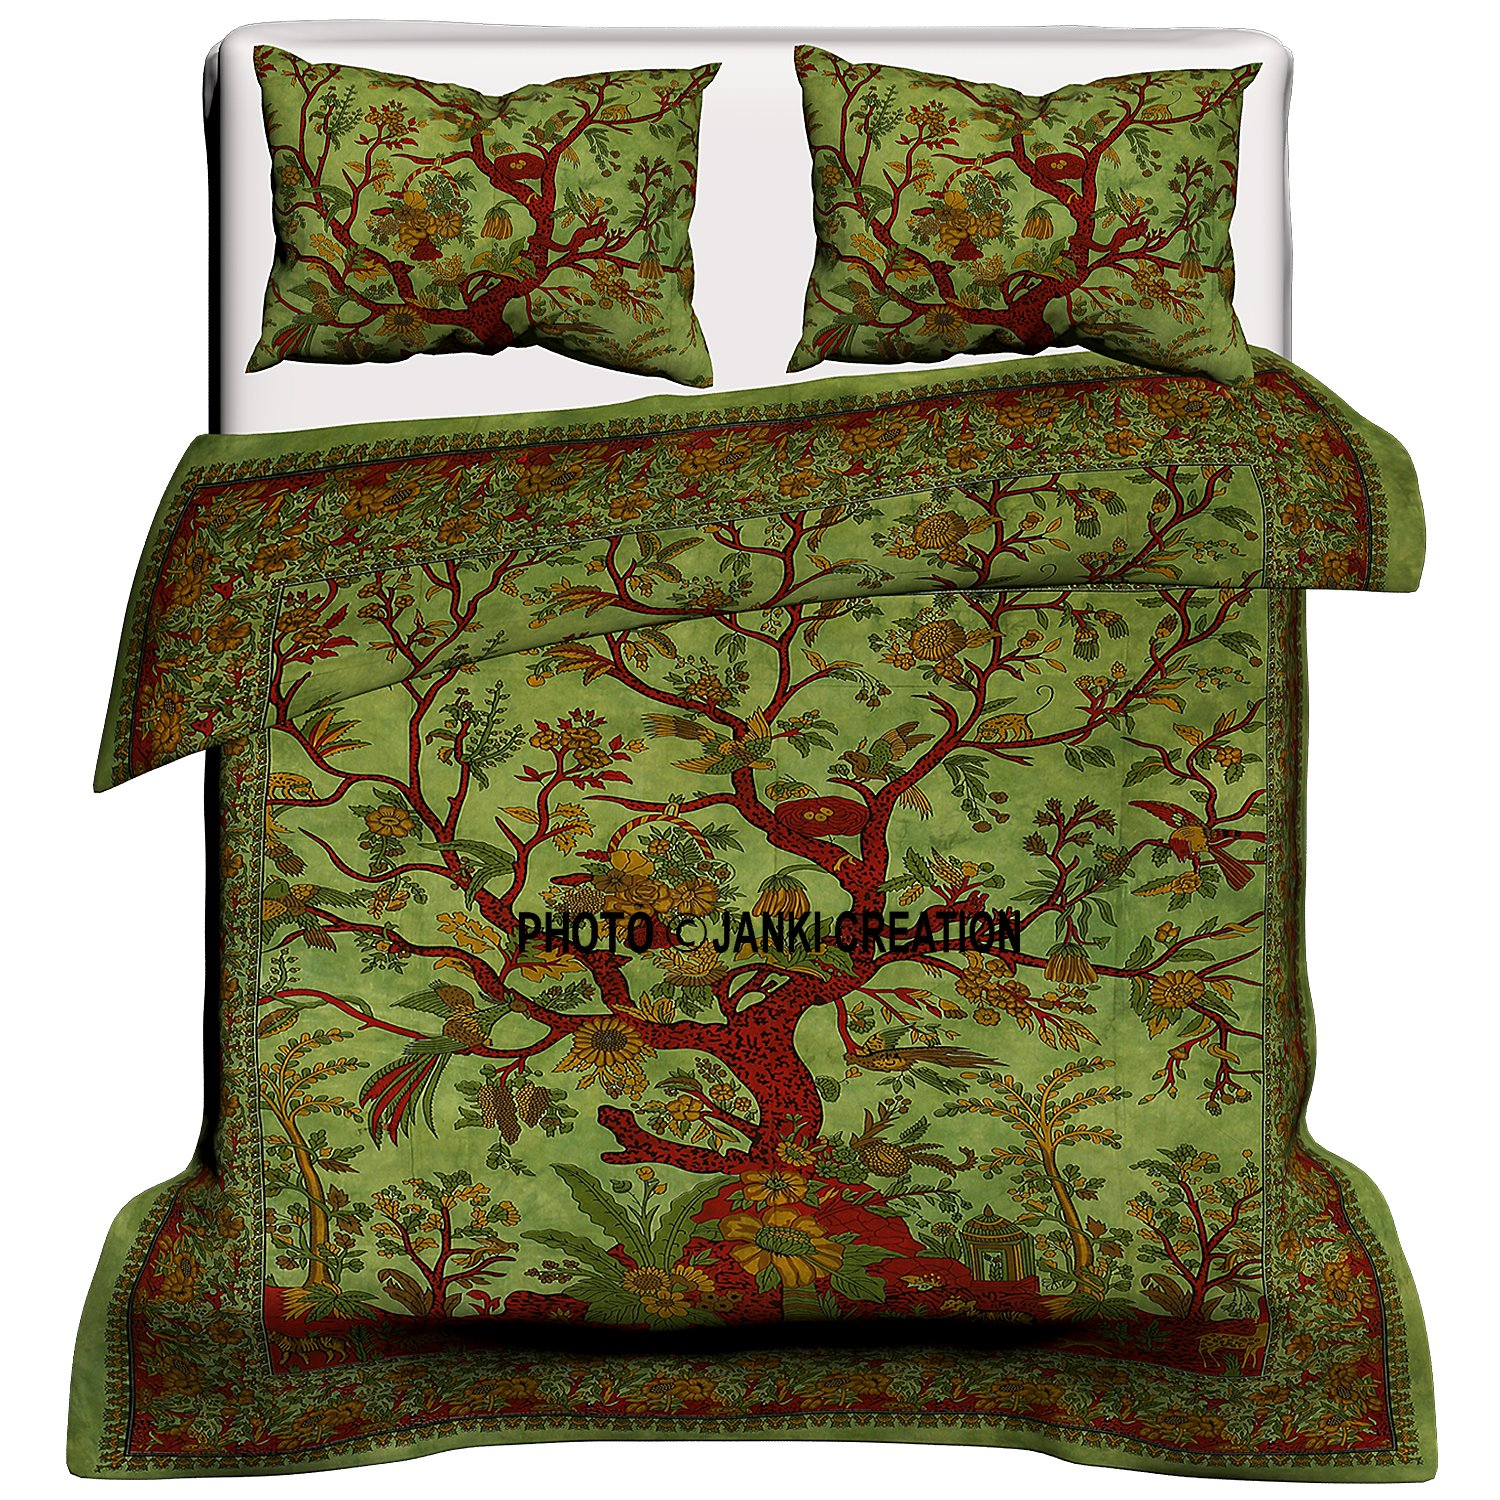 Indian Tree Of Life Cotton Queen Duvet Cover Quilt Cover Bohemian Hippie Bedspread Quilt Handmade Duvet Cover With Pillow Cover Green 80x82 Inches Bohemian Bed Set Boho Duvet Cover With Pillowcase Buy